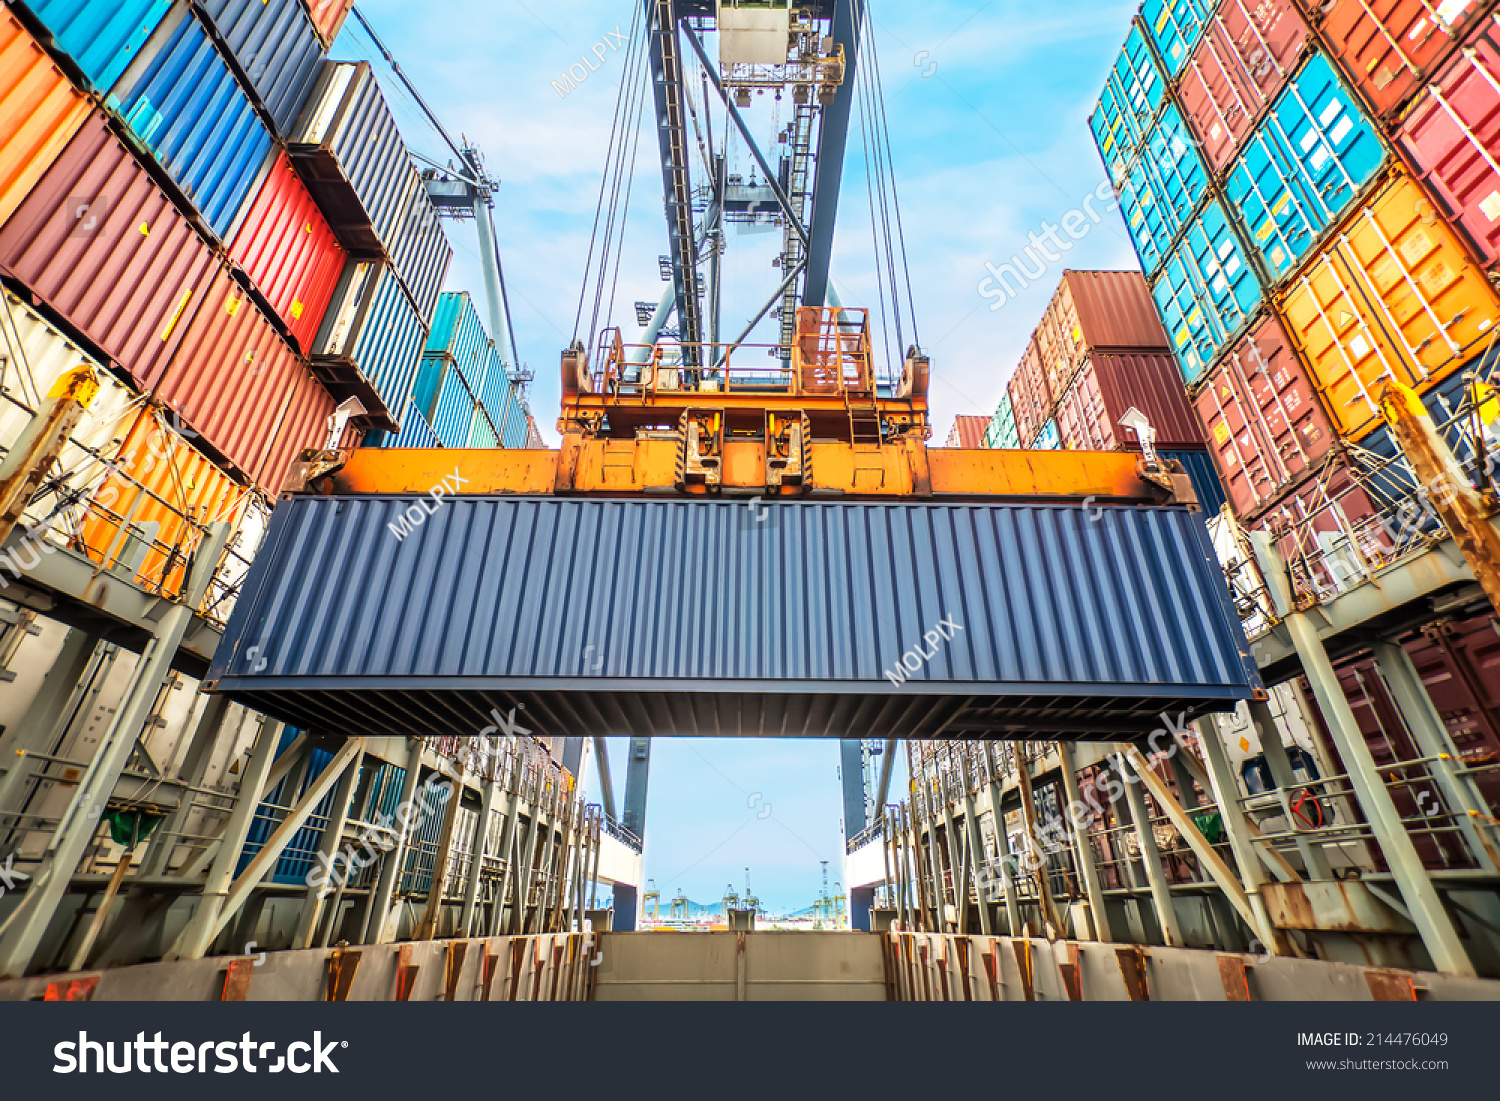 Container loading in a Cargo freight ship with industrial crane. Container ship in import and export business logistic company. Industry and Transportation concept. #214476049